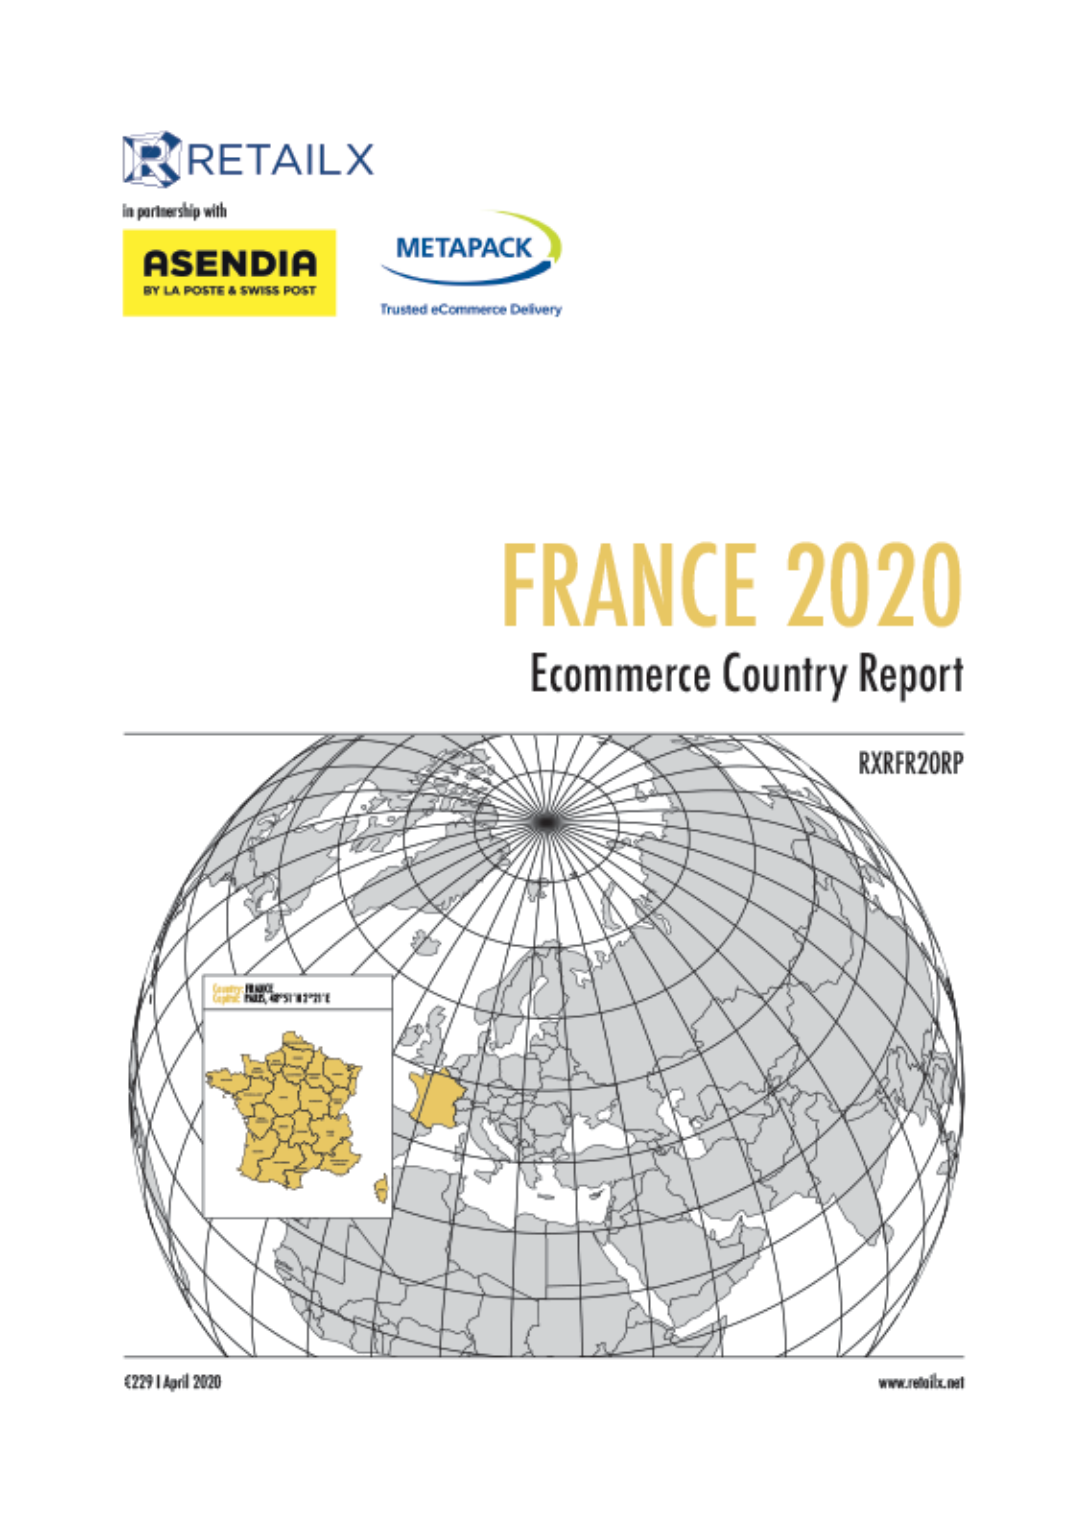 France 2020 Ecommerce Country Report_cover